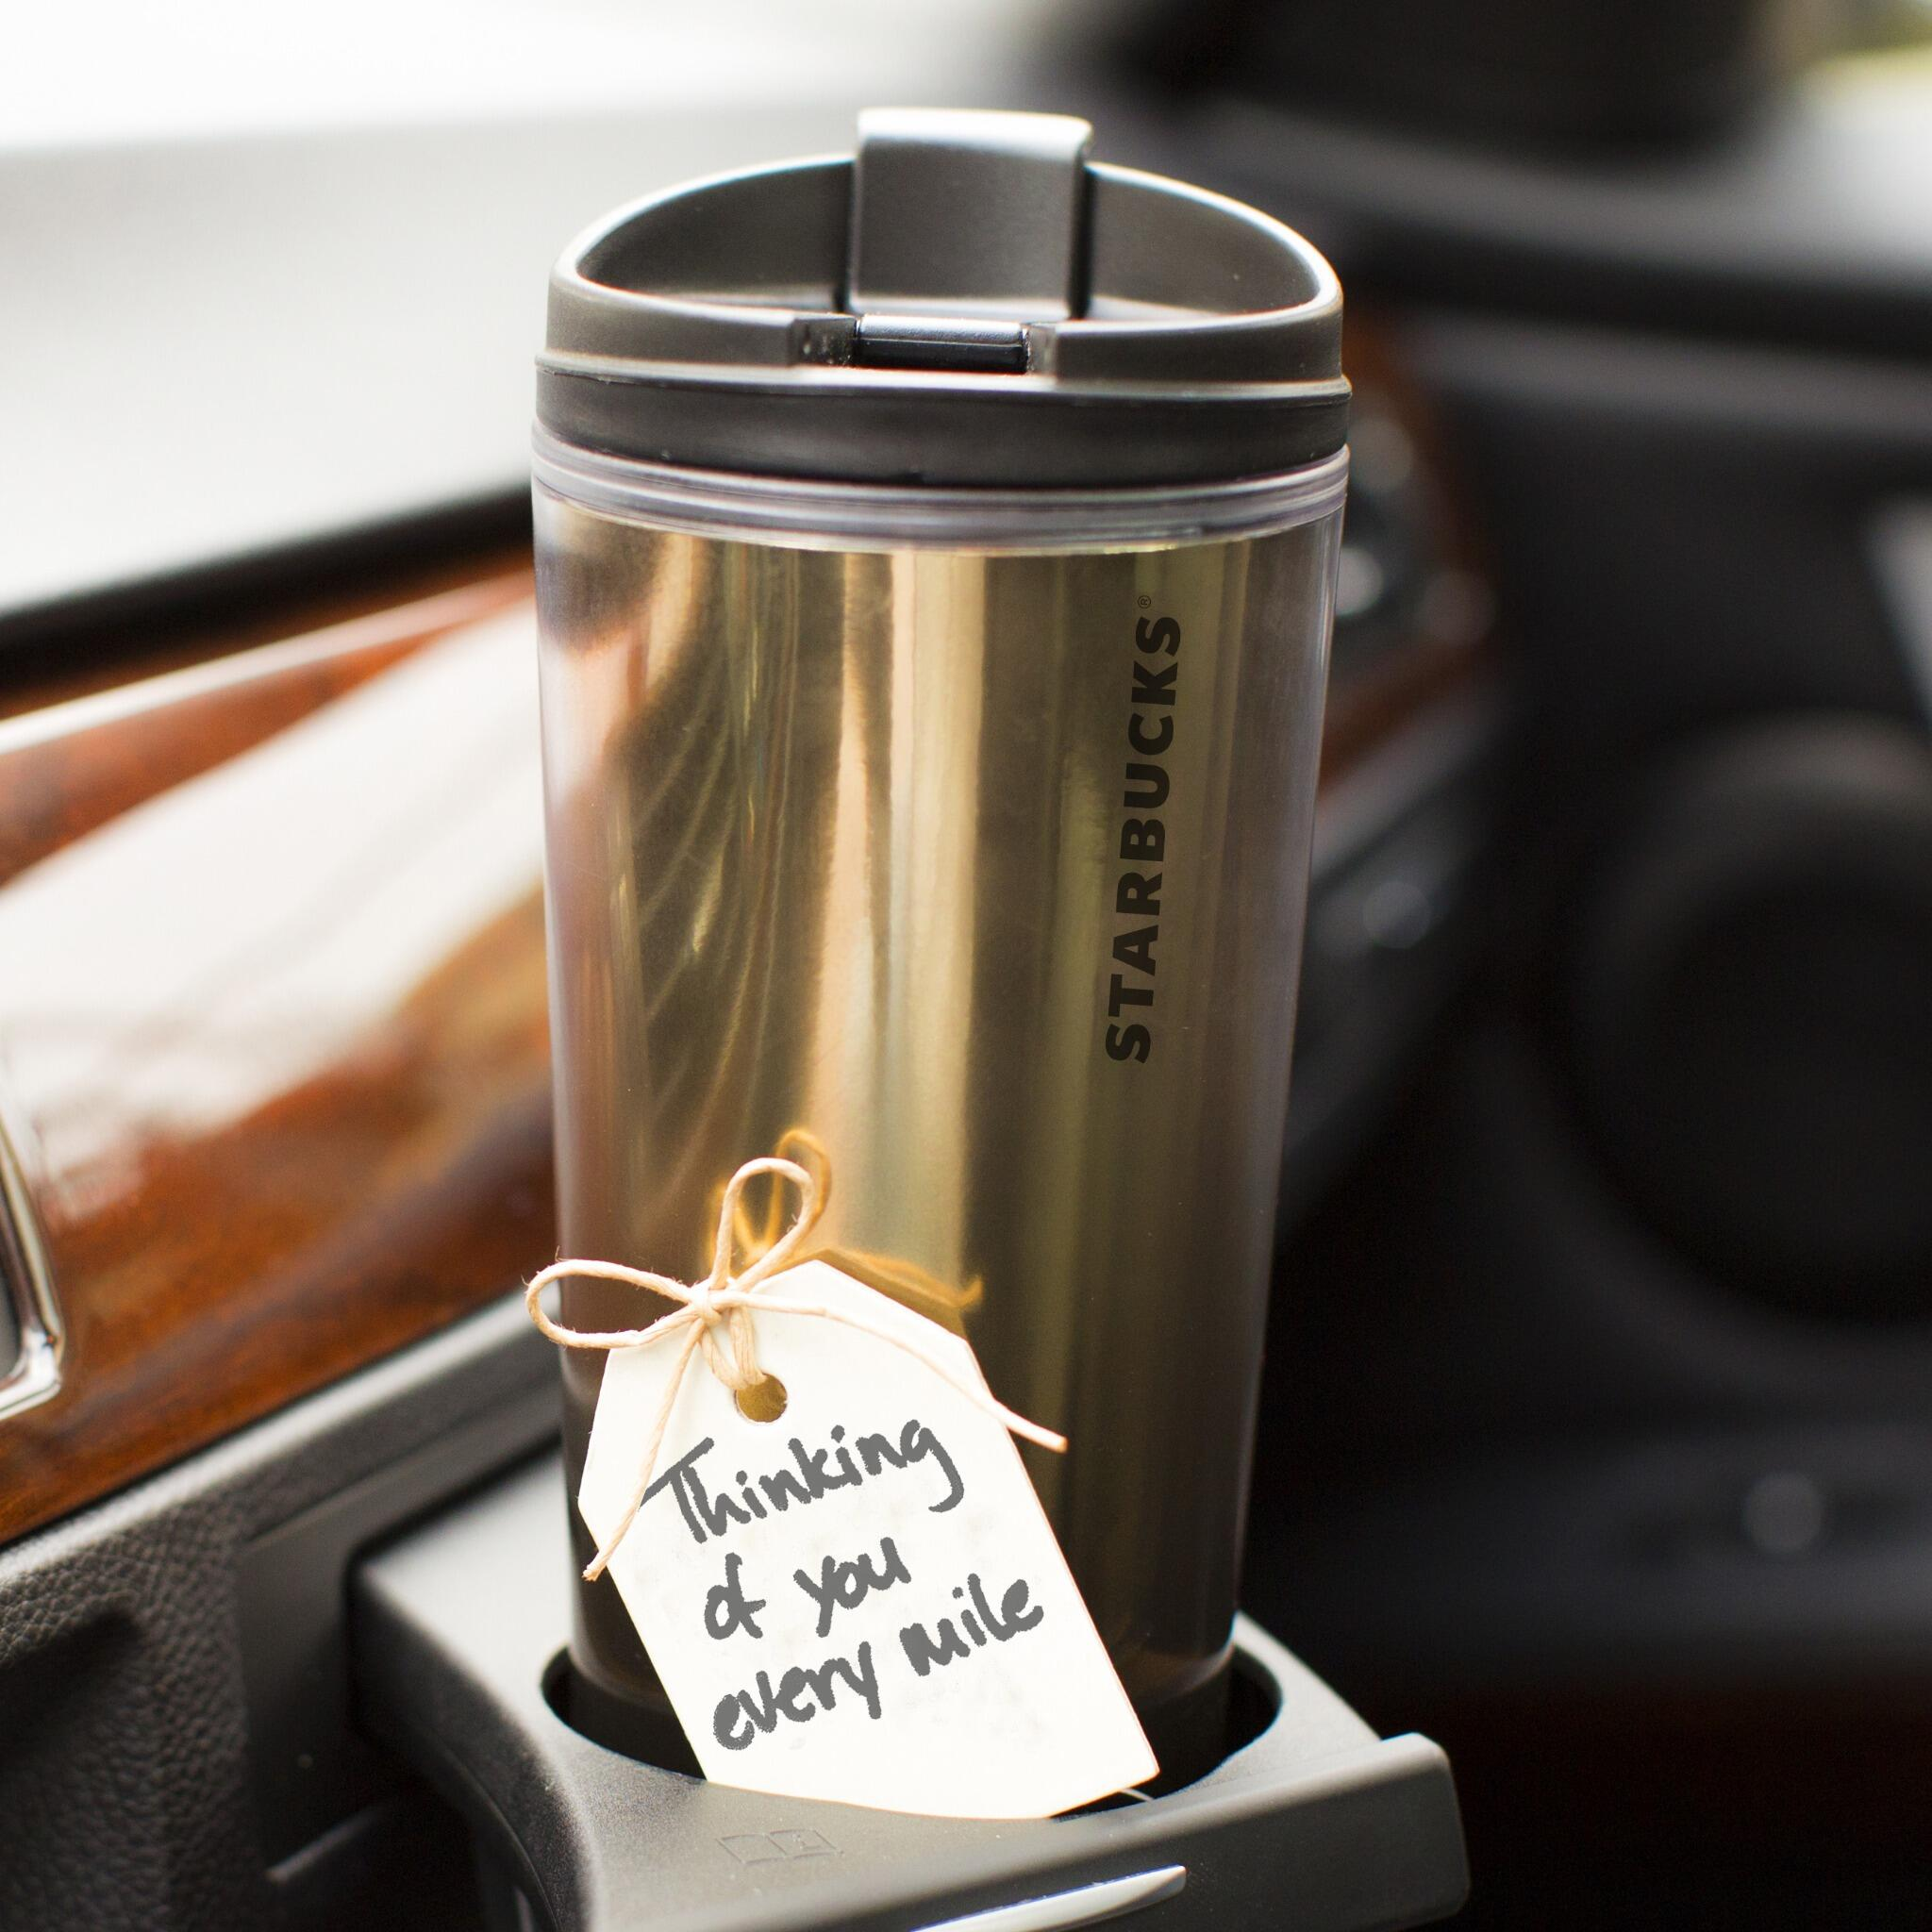 Some cheer for the commute! RT @StarbucksStore Acrylic & Stainless Steel Tumblers, 50% off thru 11/17 #holidaysavings http://t.co/DPnnseU92K